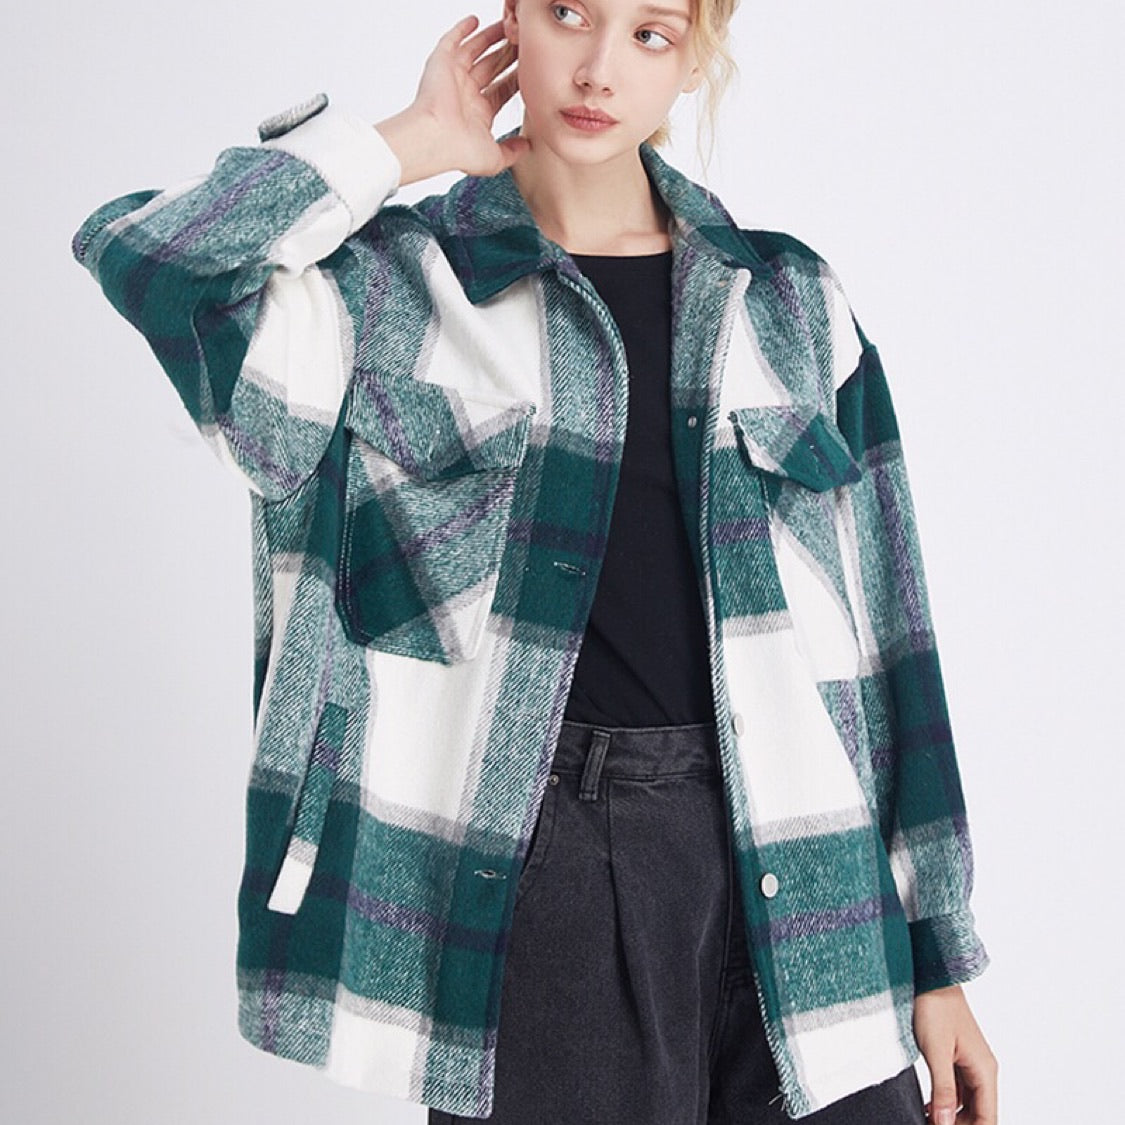 Vintage Oversized Plaid Jacket - Oh, Sassy!